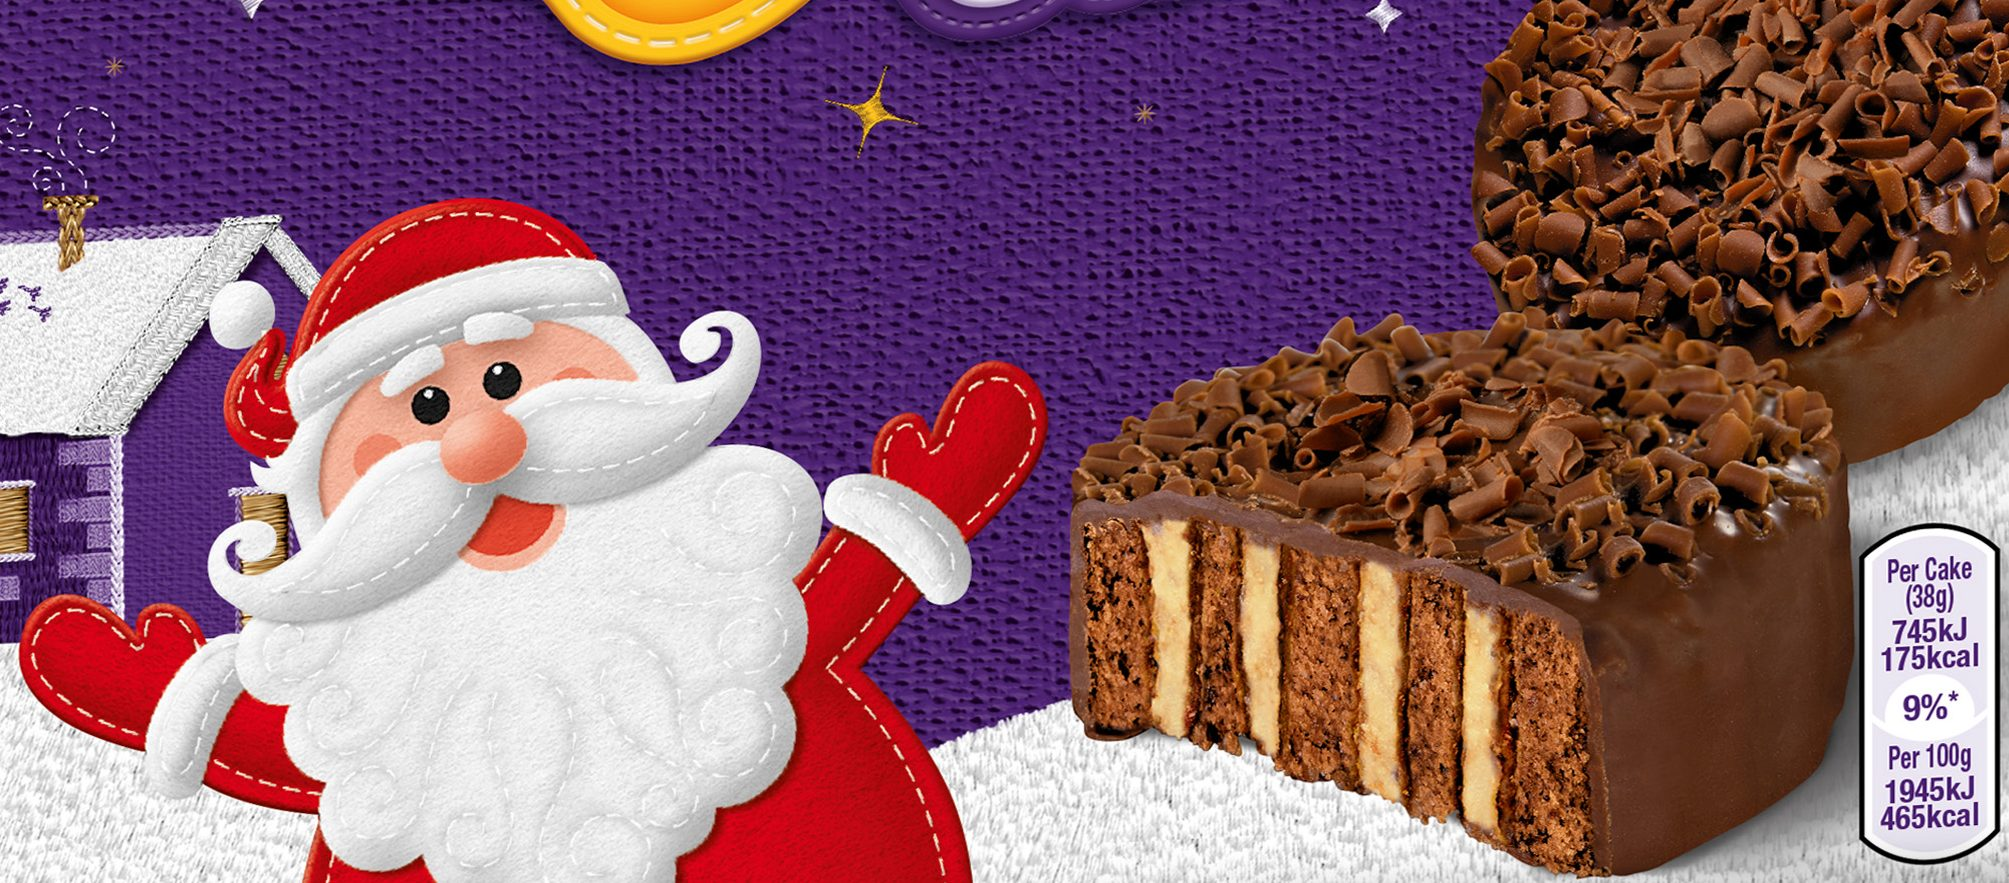 Cadbury announces its Christmas cake range, with new caramel nest cakes and two new Mini Roll flavours